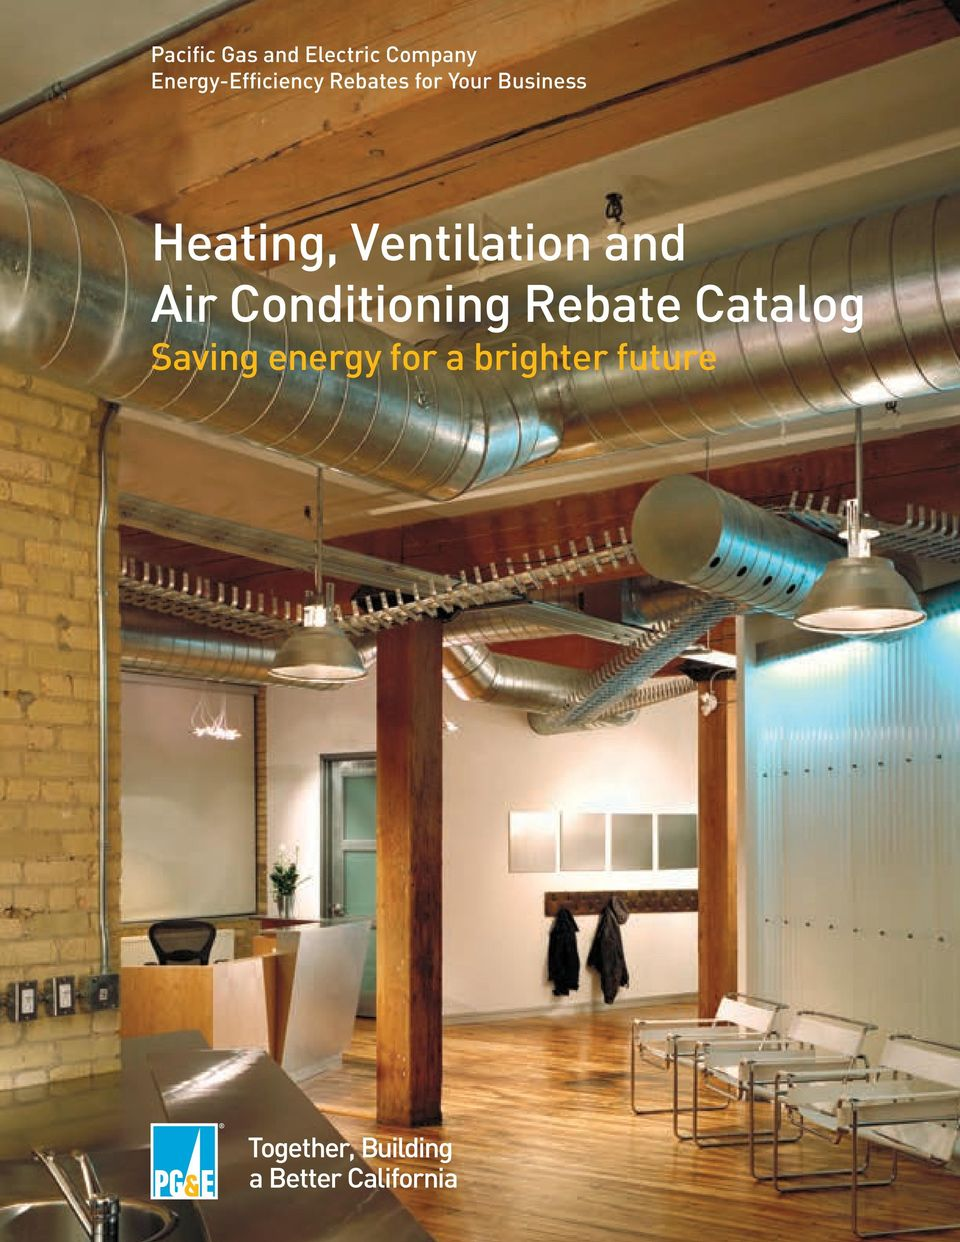 Heating, Ventilation and Air